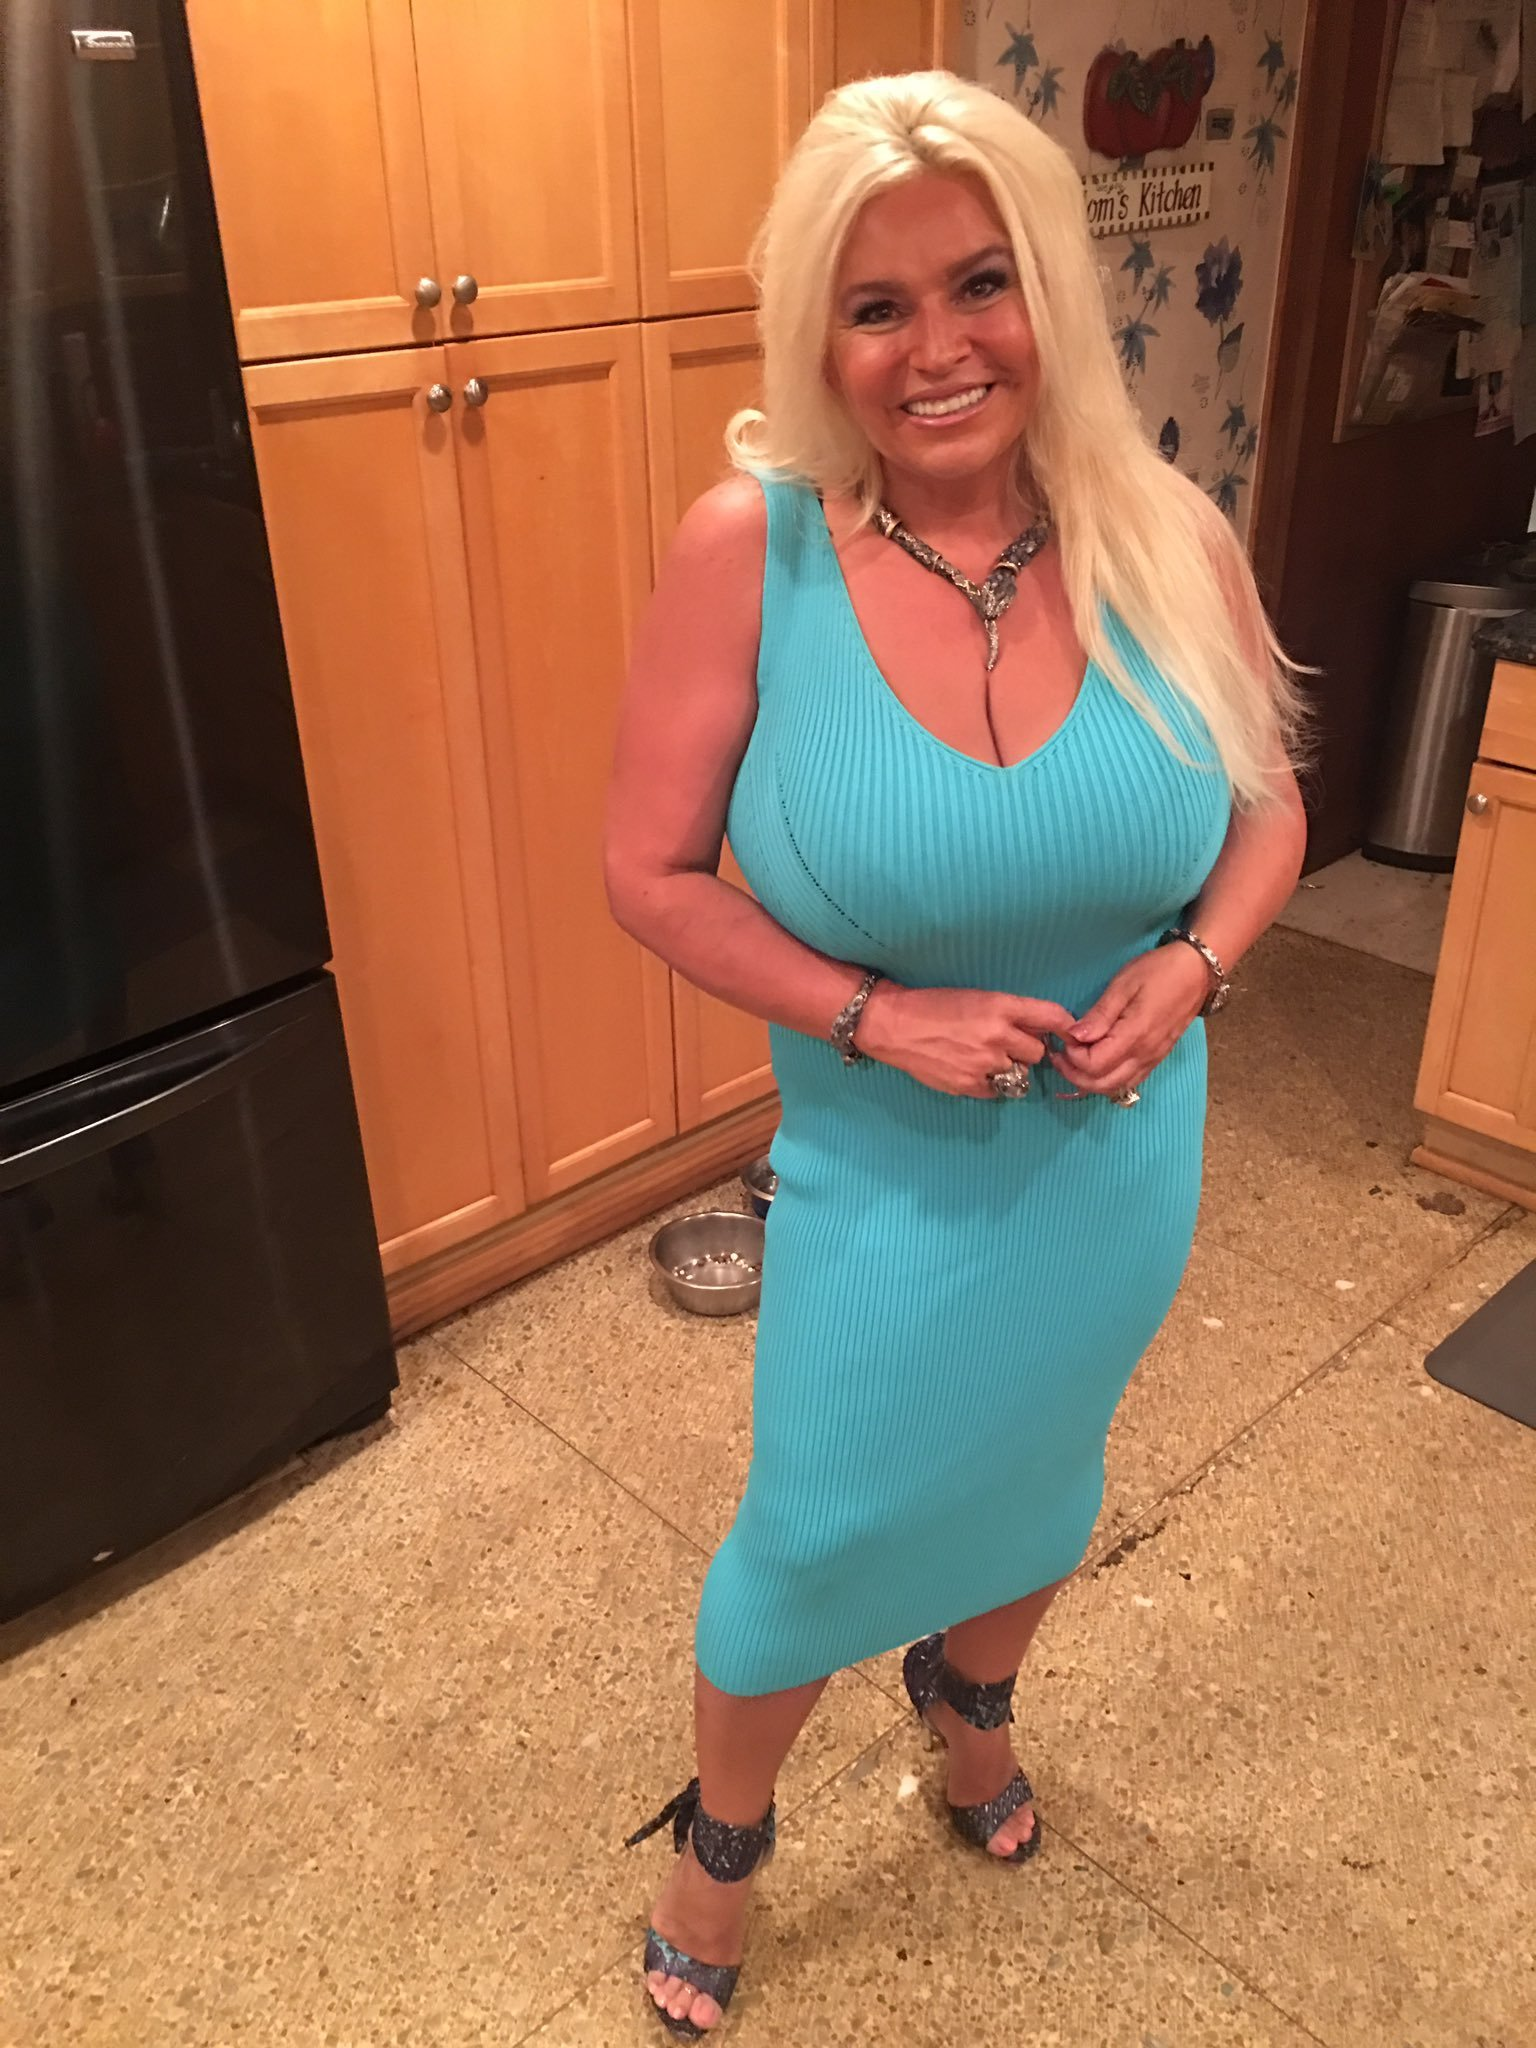 How Fans Inspired Beth Chapman to Share Her Cancer. - toofab Beth chapman hot photos